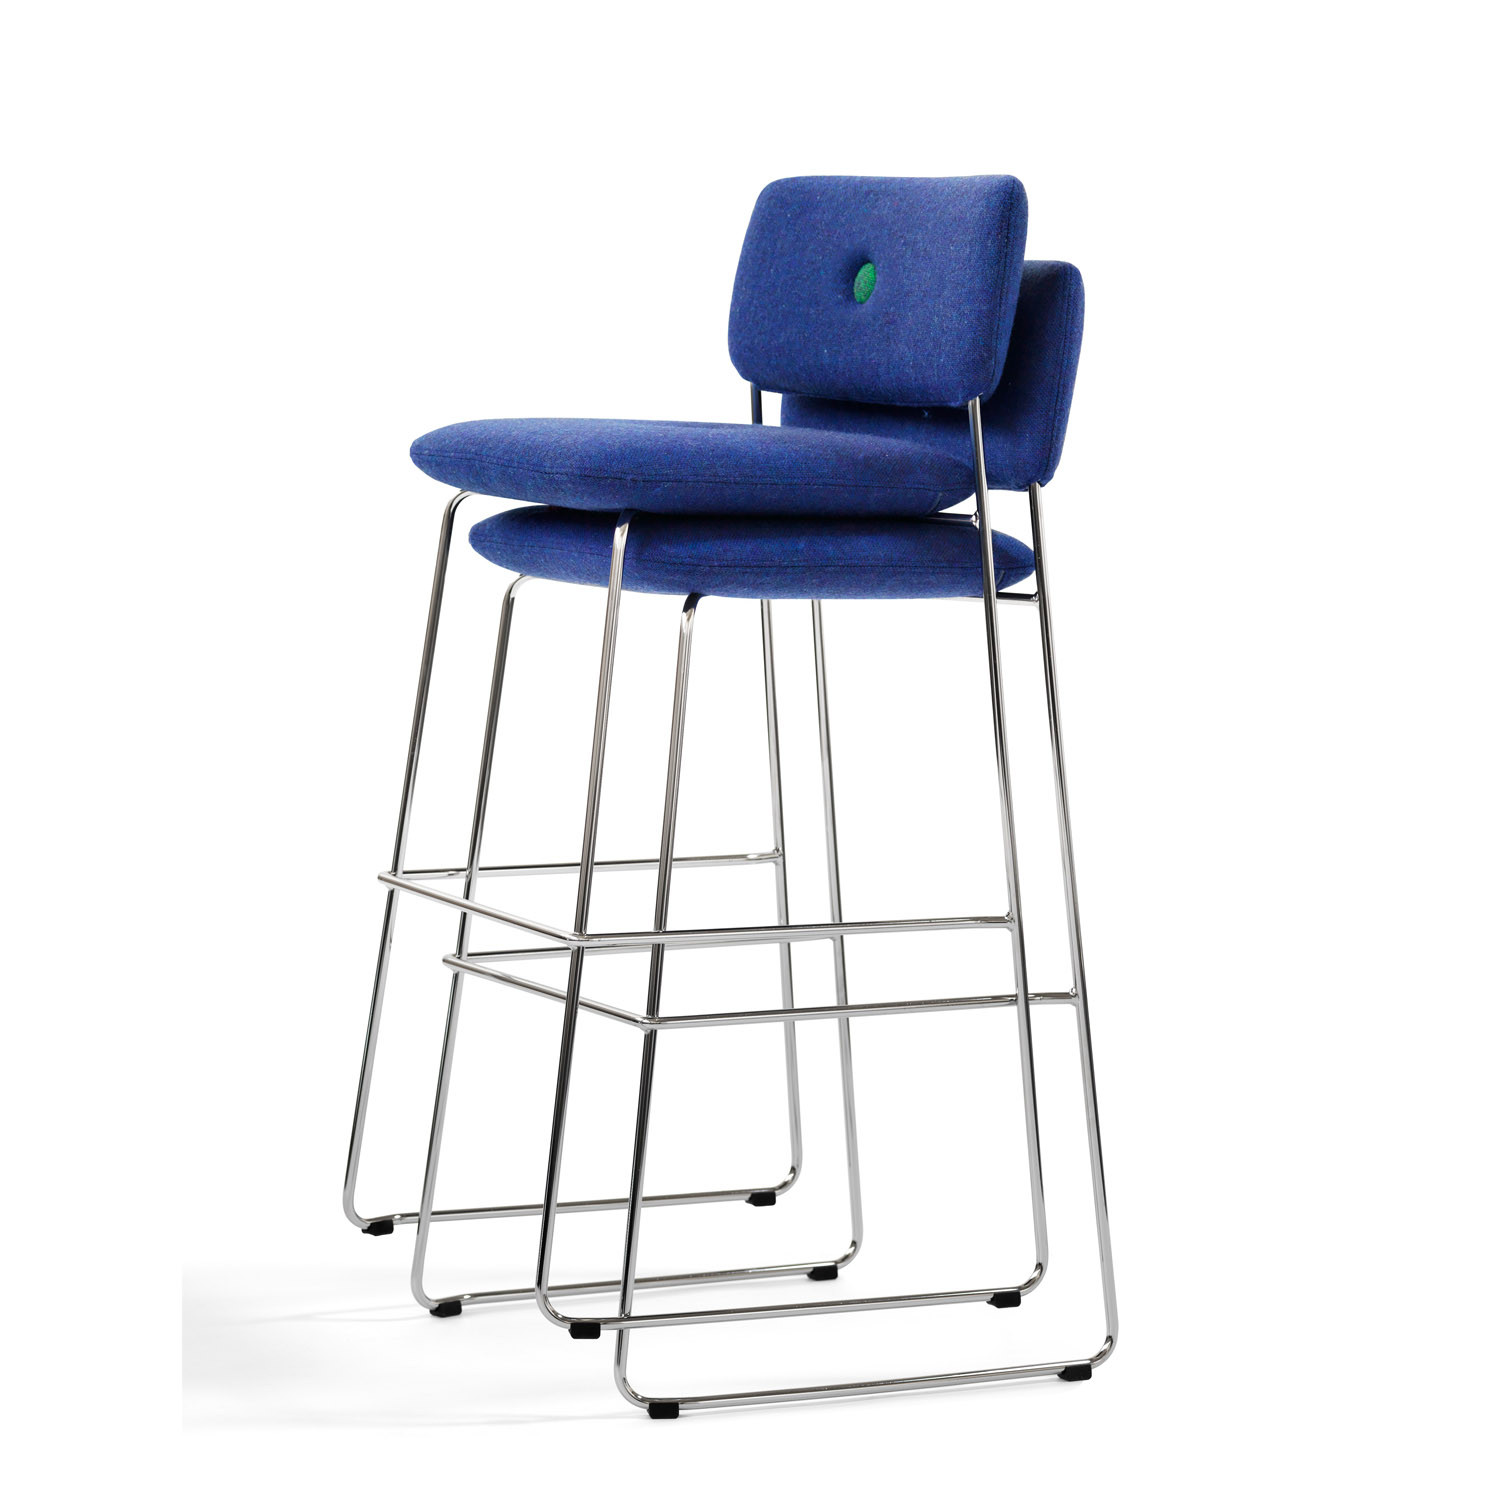 Dundra Stacking Stools S72-82